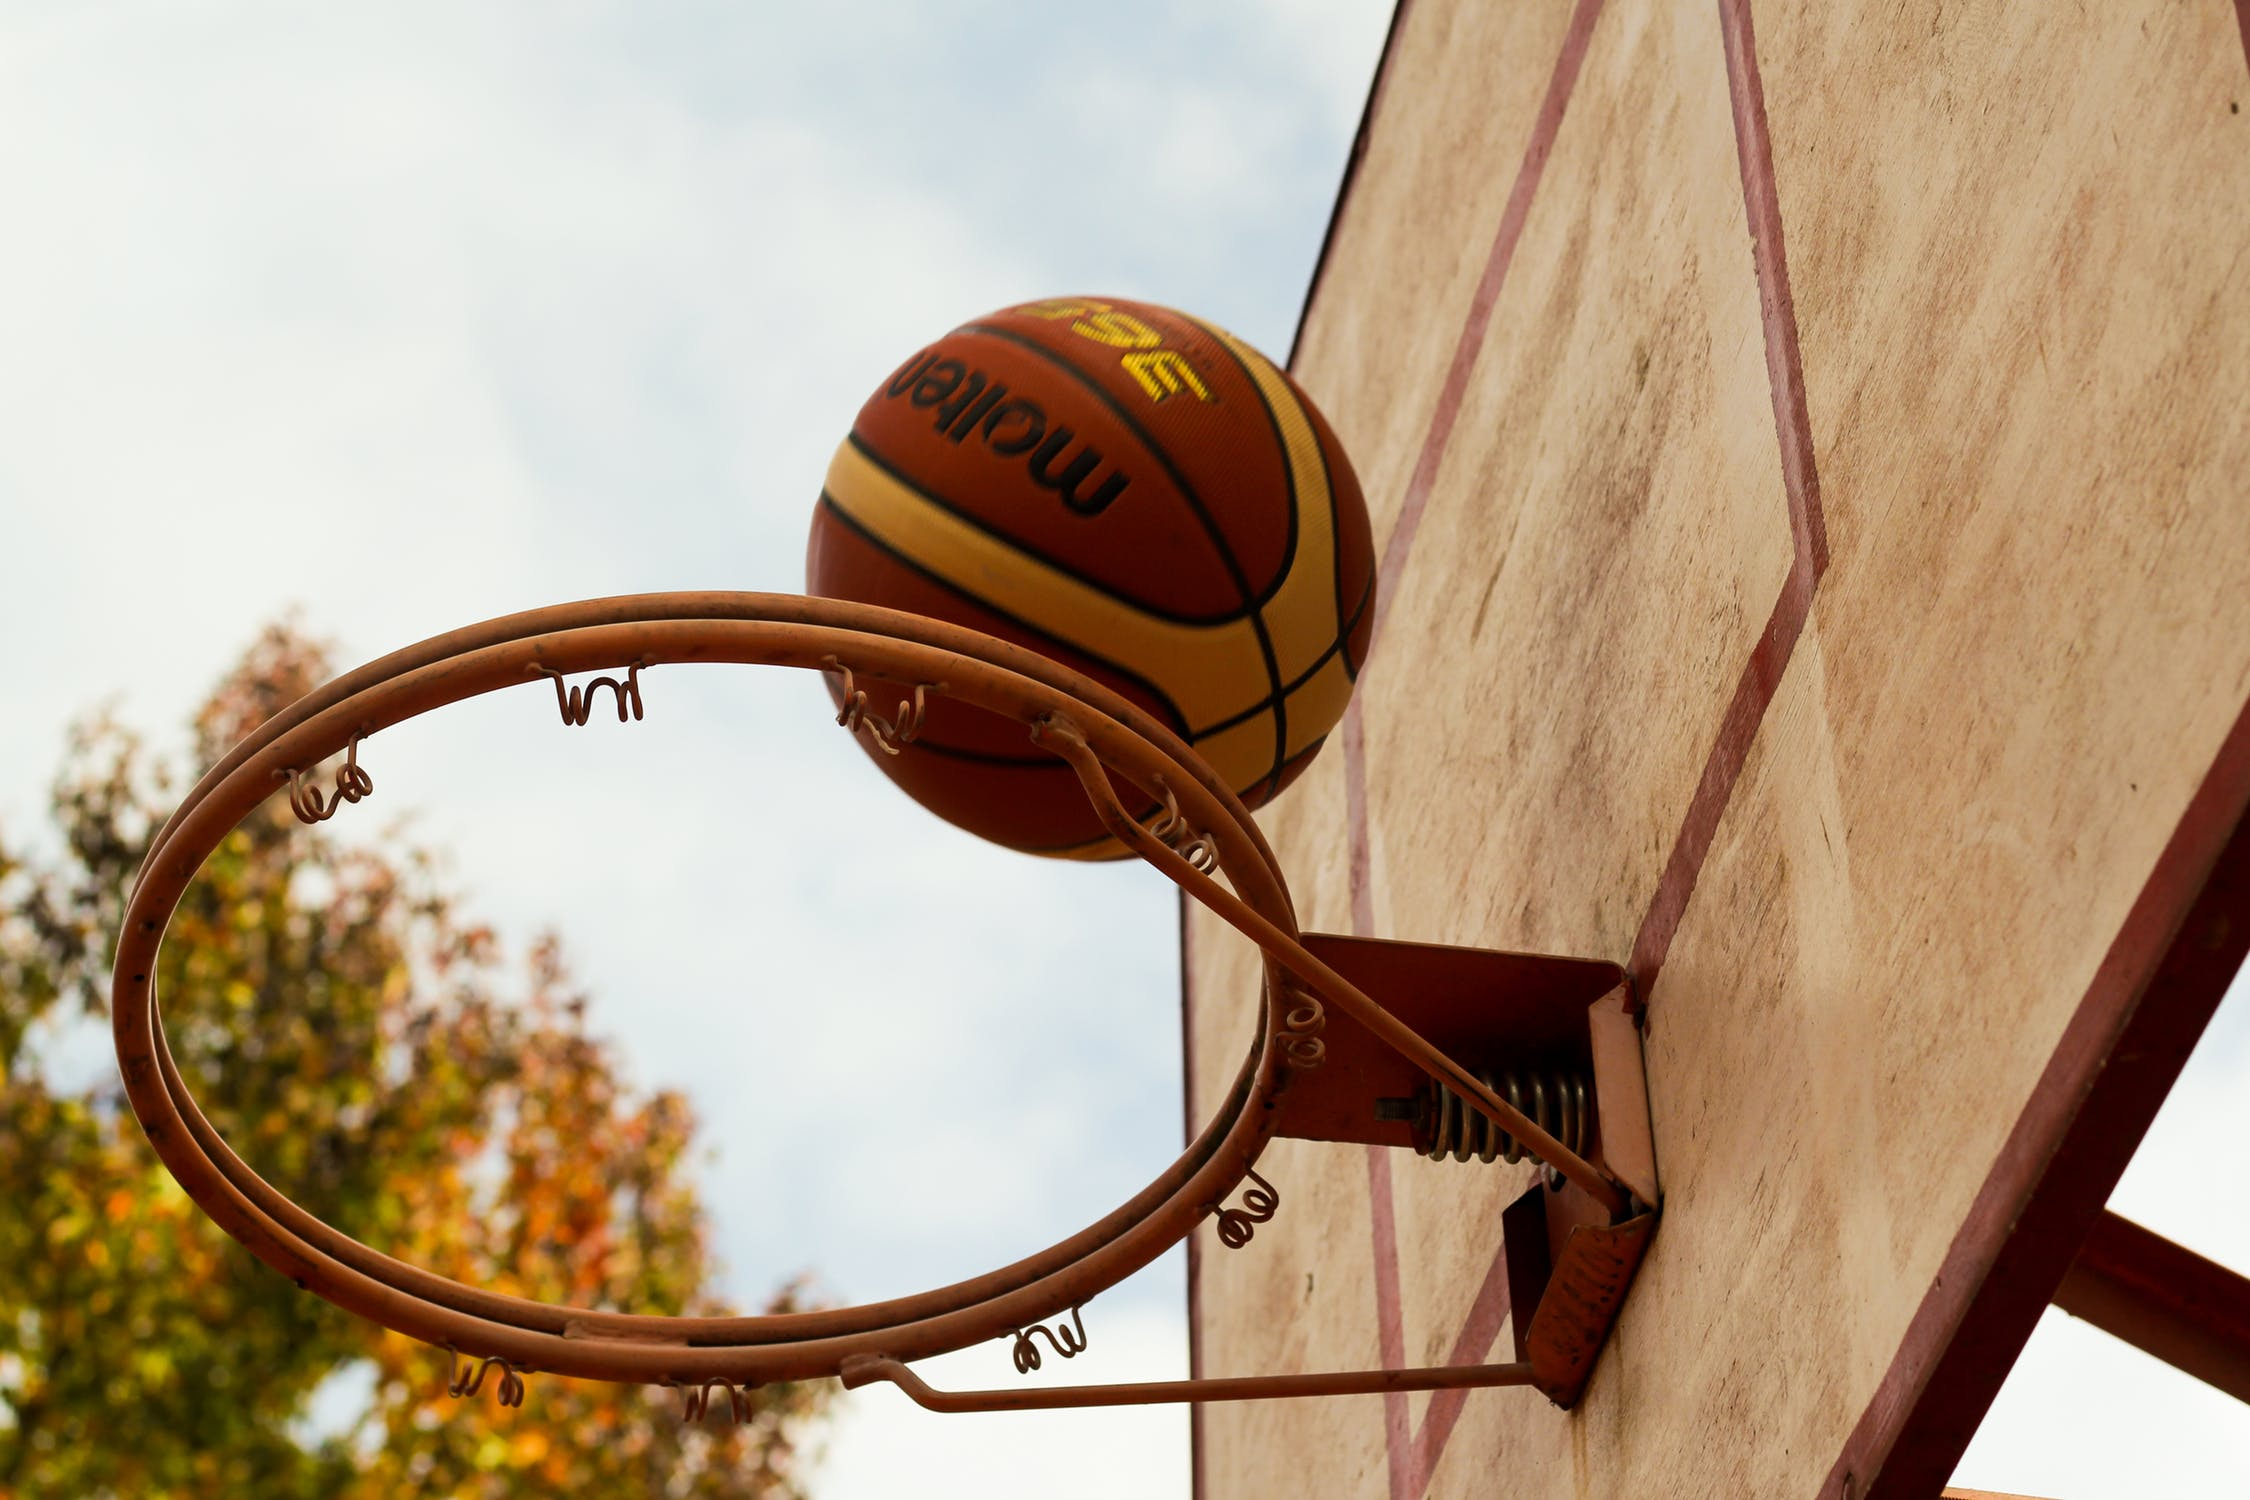 A basketball hovers over the rim of a basketball hoop